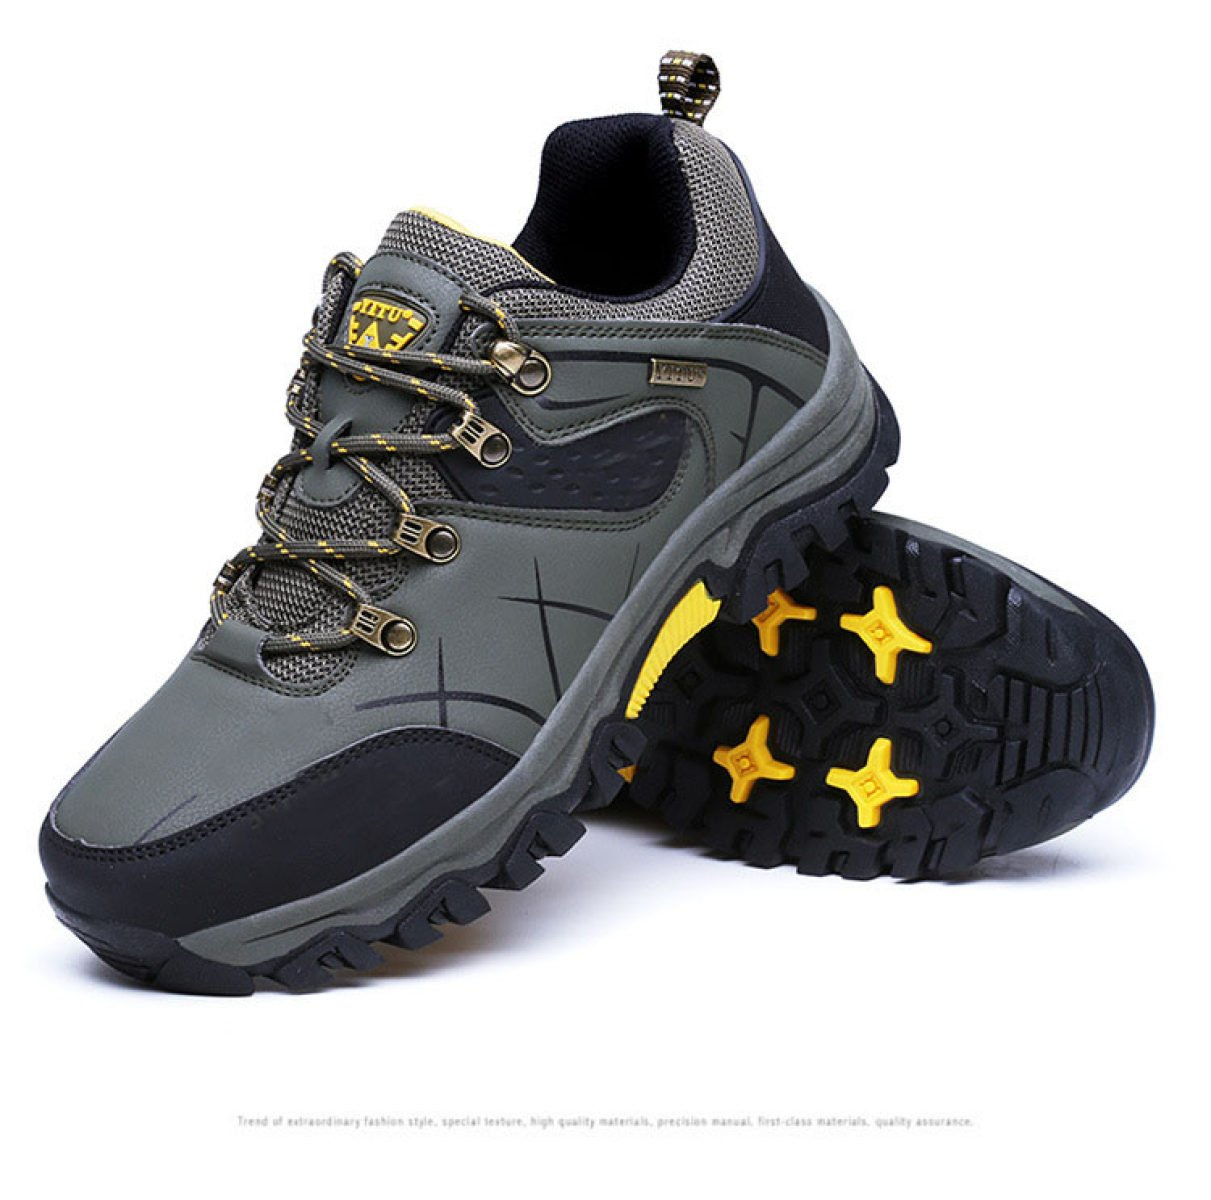 Spring And Autumn Men's Outdoor Anti-skid Climbing Shoes Multi-color Multi- size: Amazon.co.uk: Sports & Outdoors